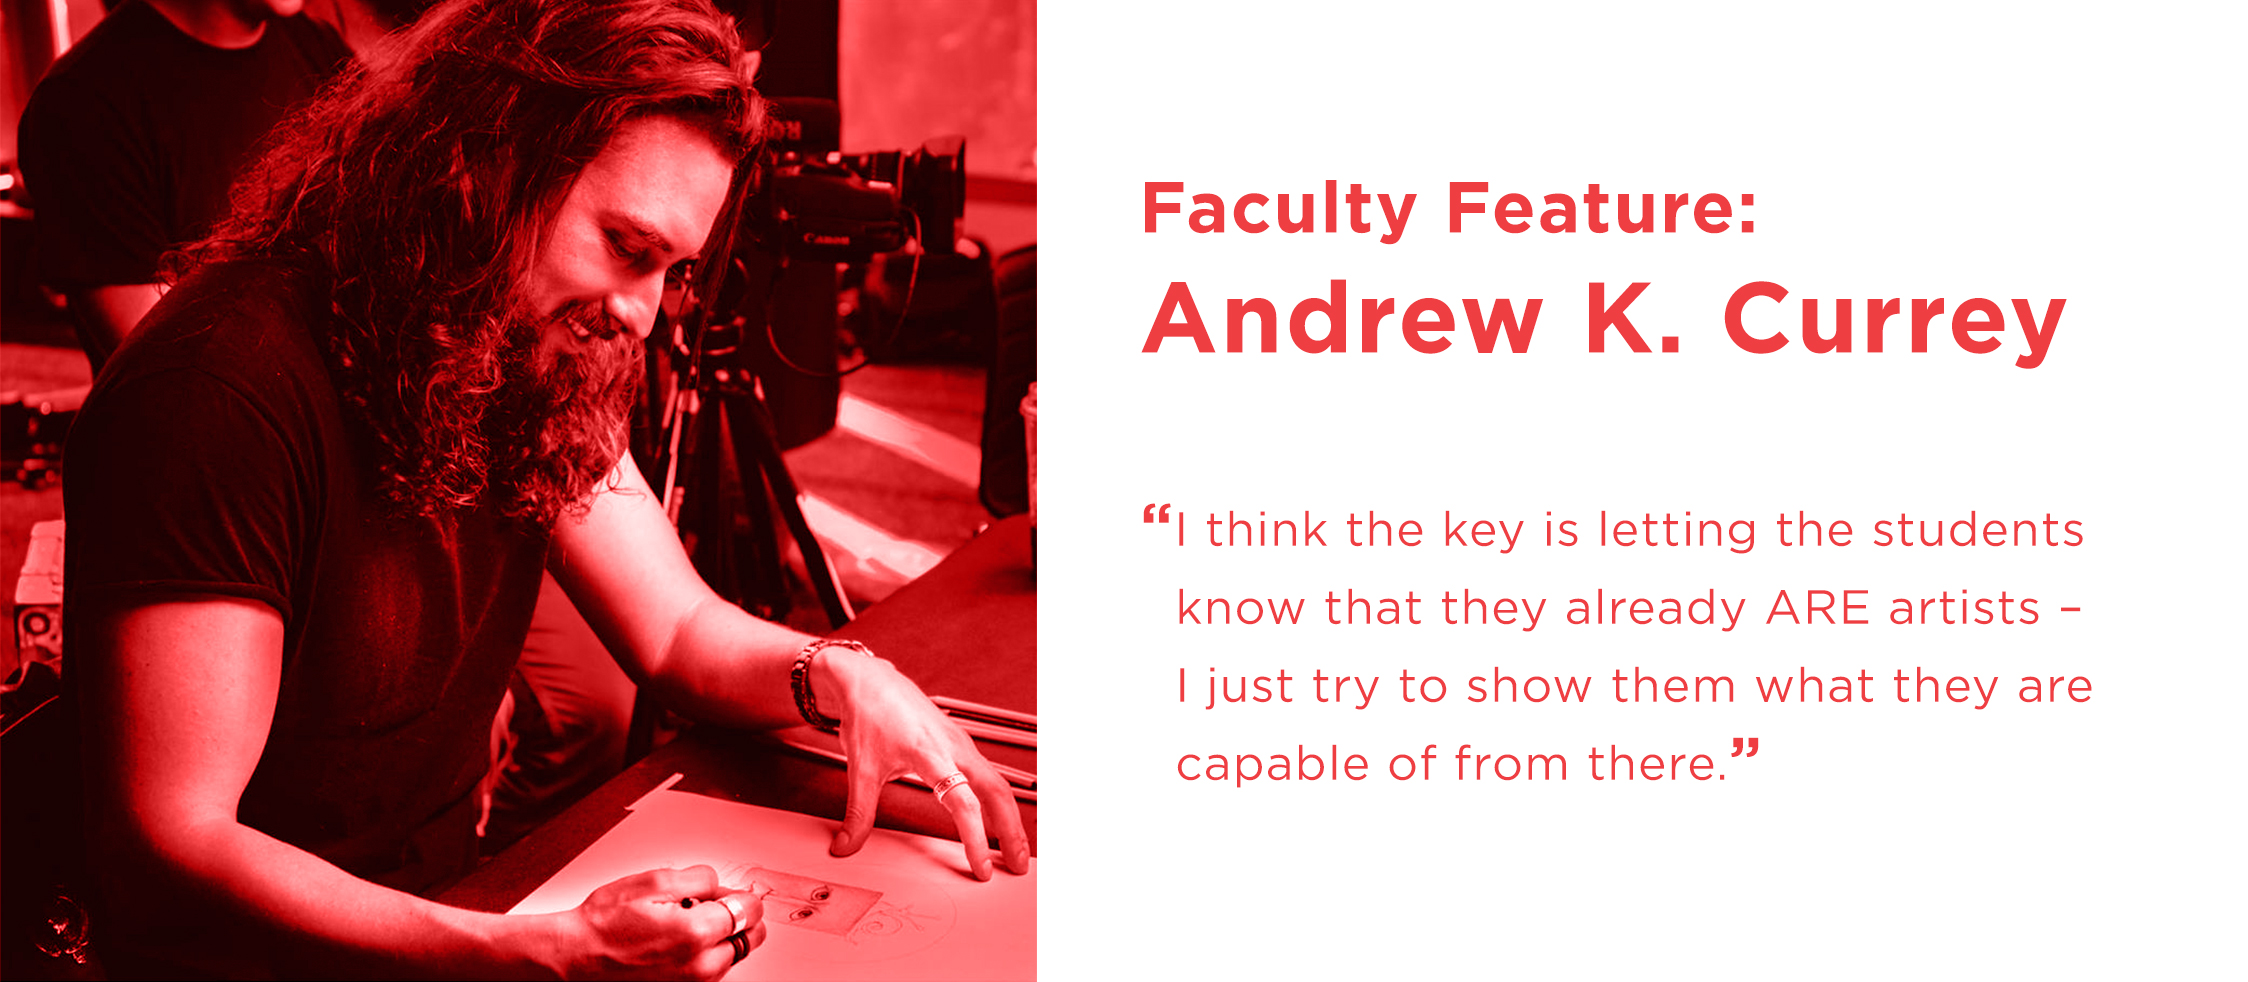 Faculty Feature: Andrew K. Currey